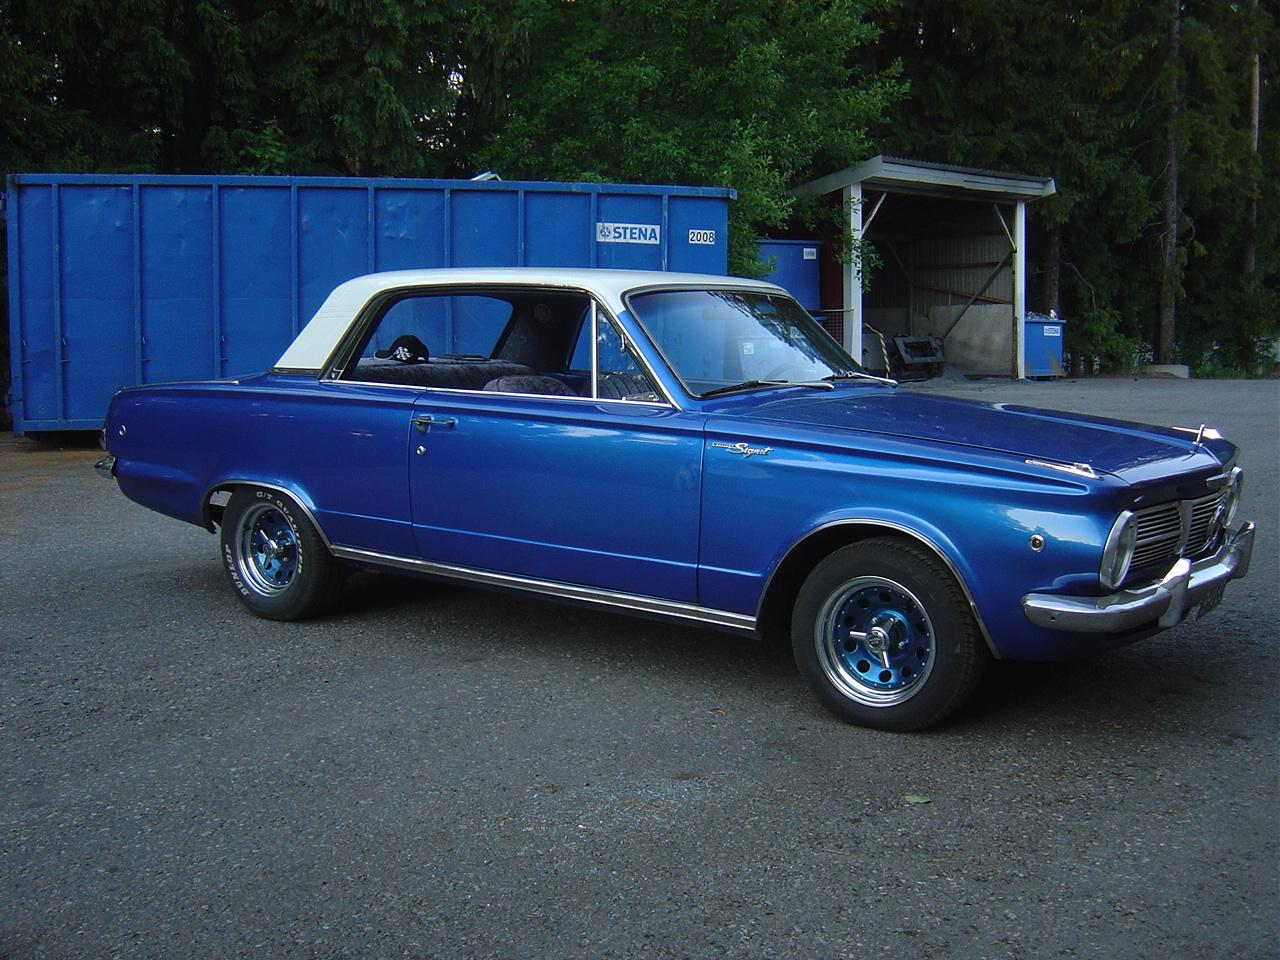 Signet-65's 1965 Plymouth Valiant